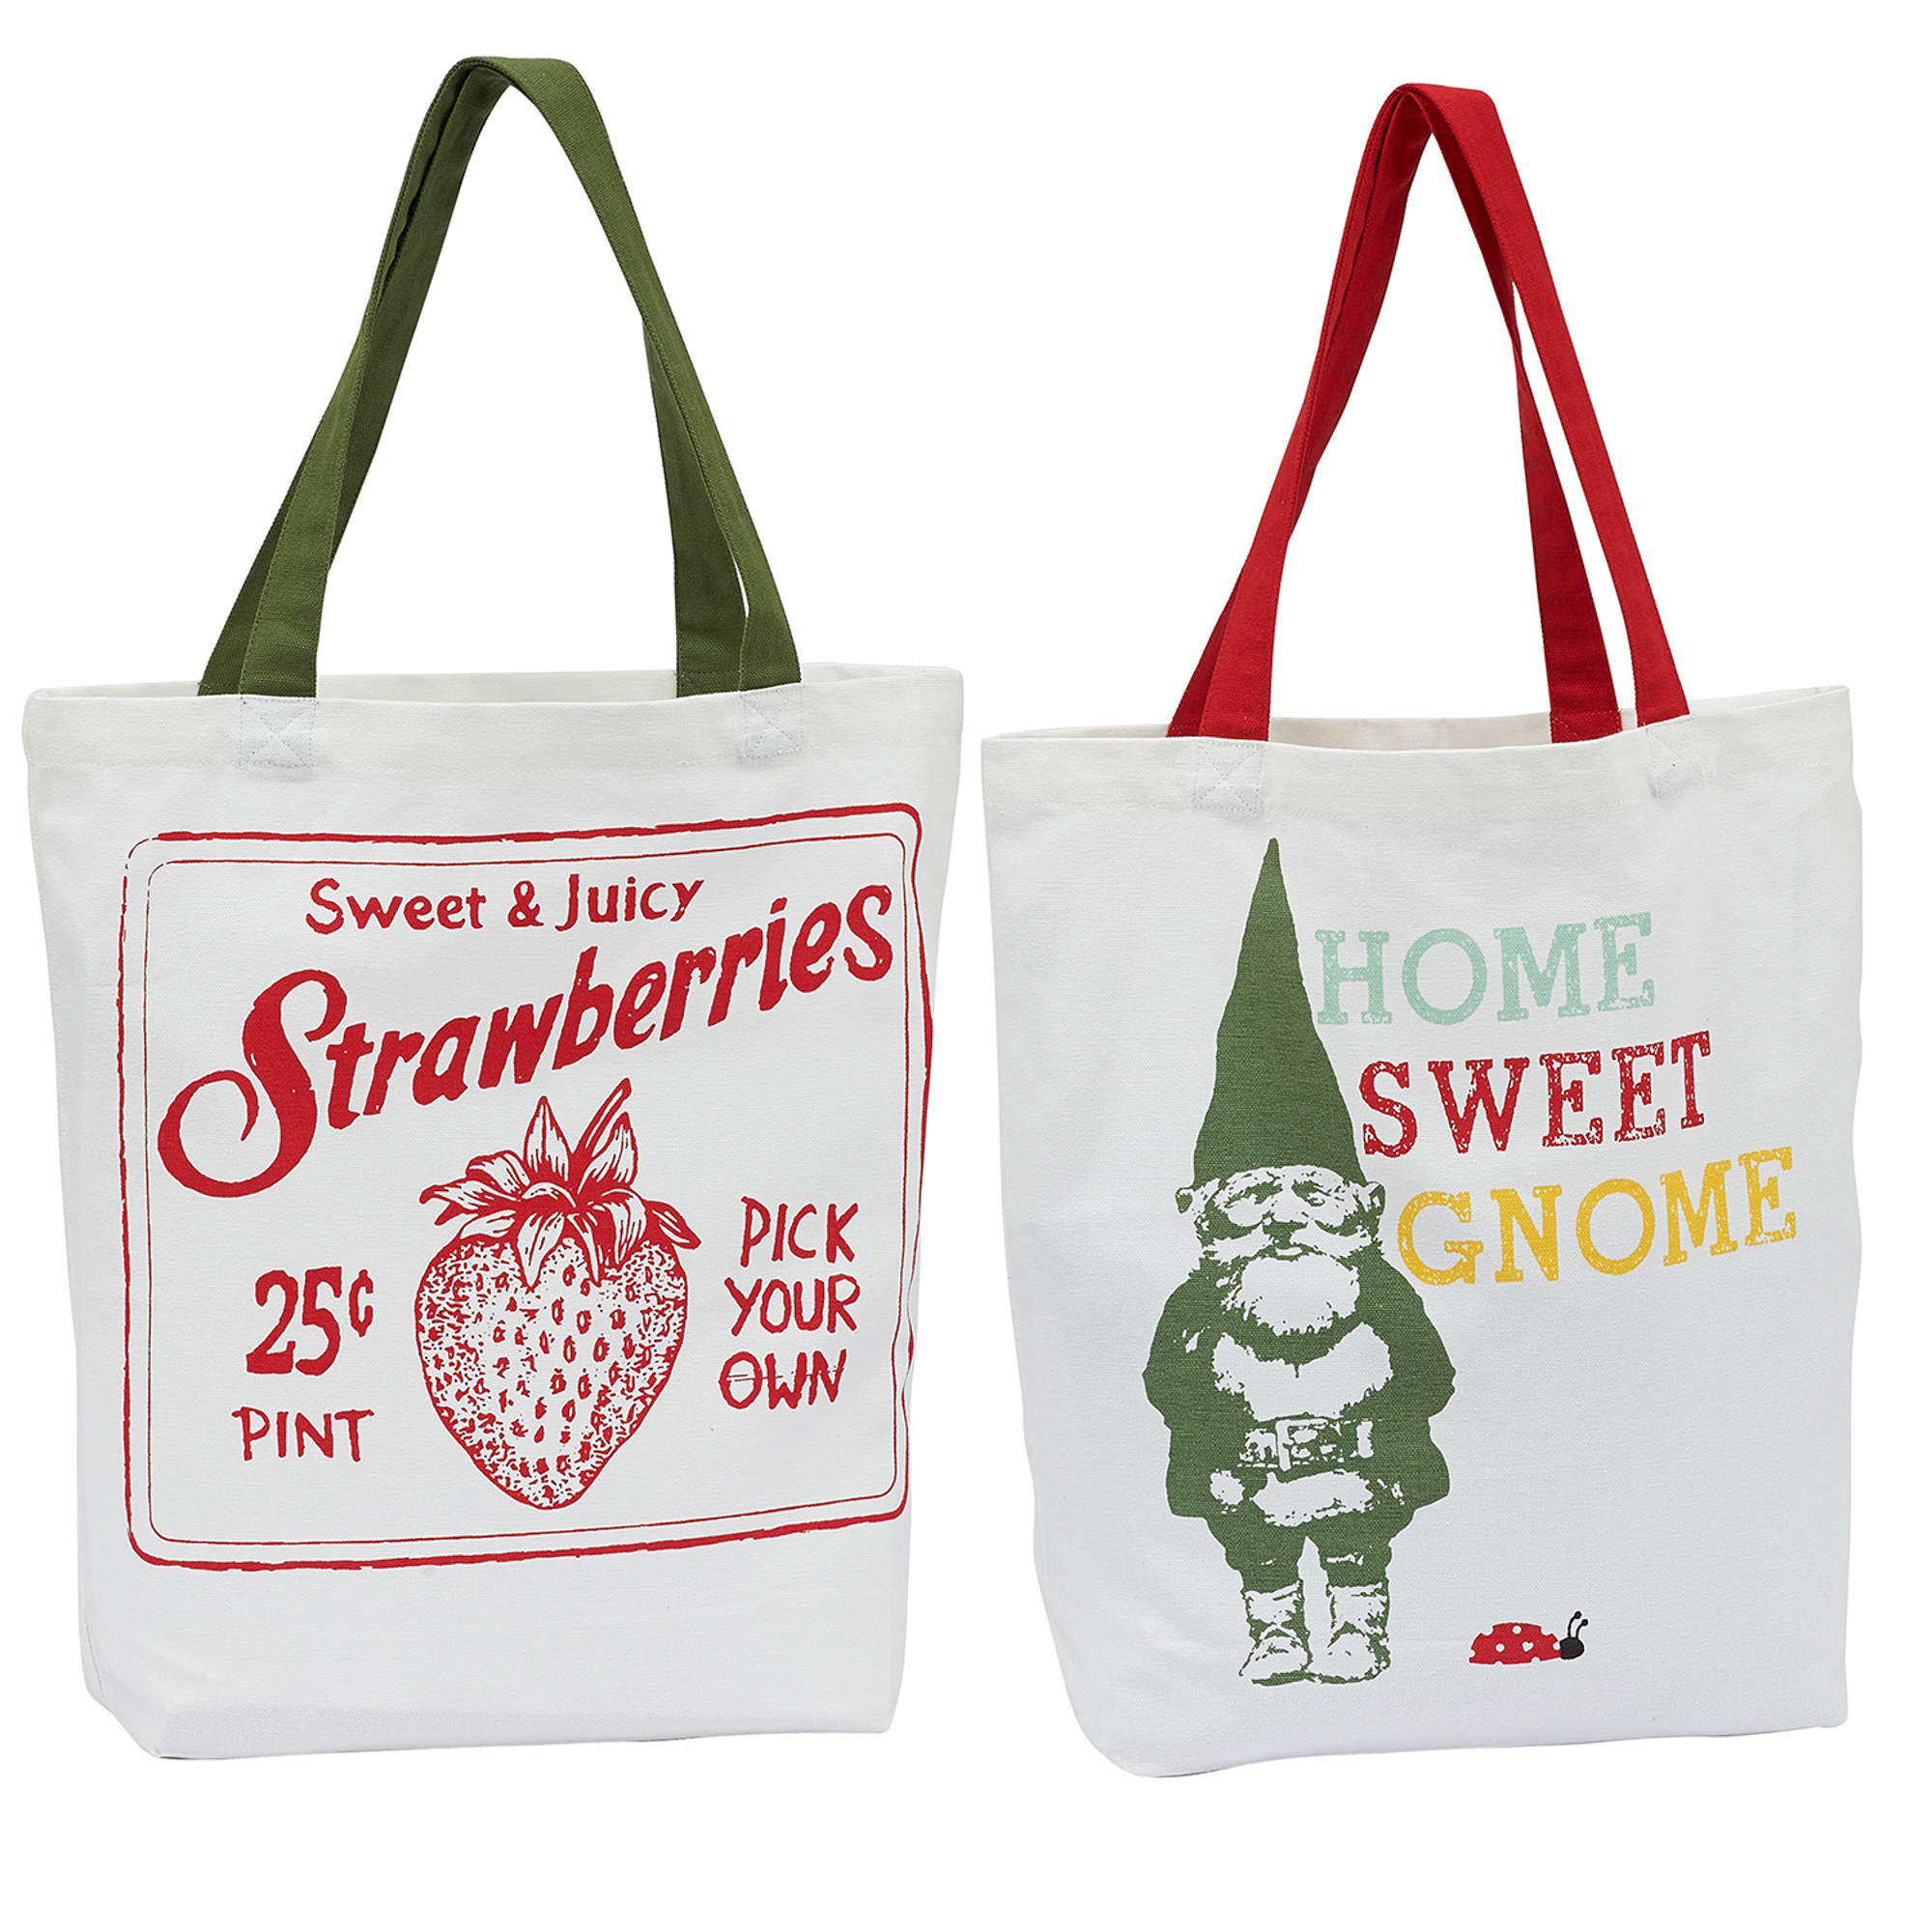 Two white canvas tote bags, one with green handles and a strawberry image and the other with red handles and a gnome image